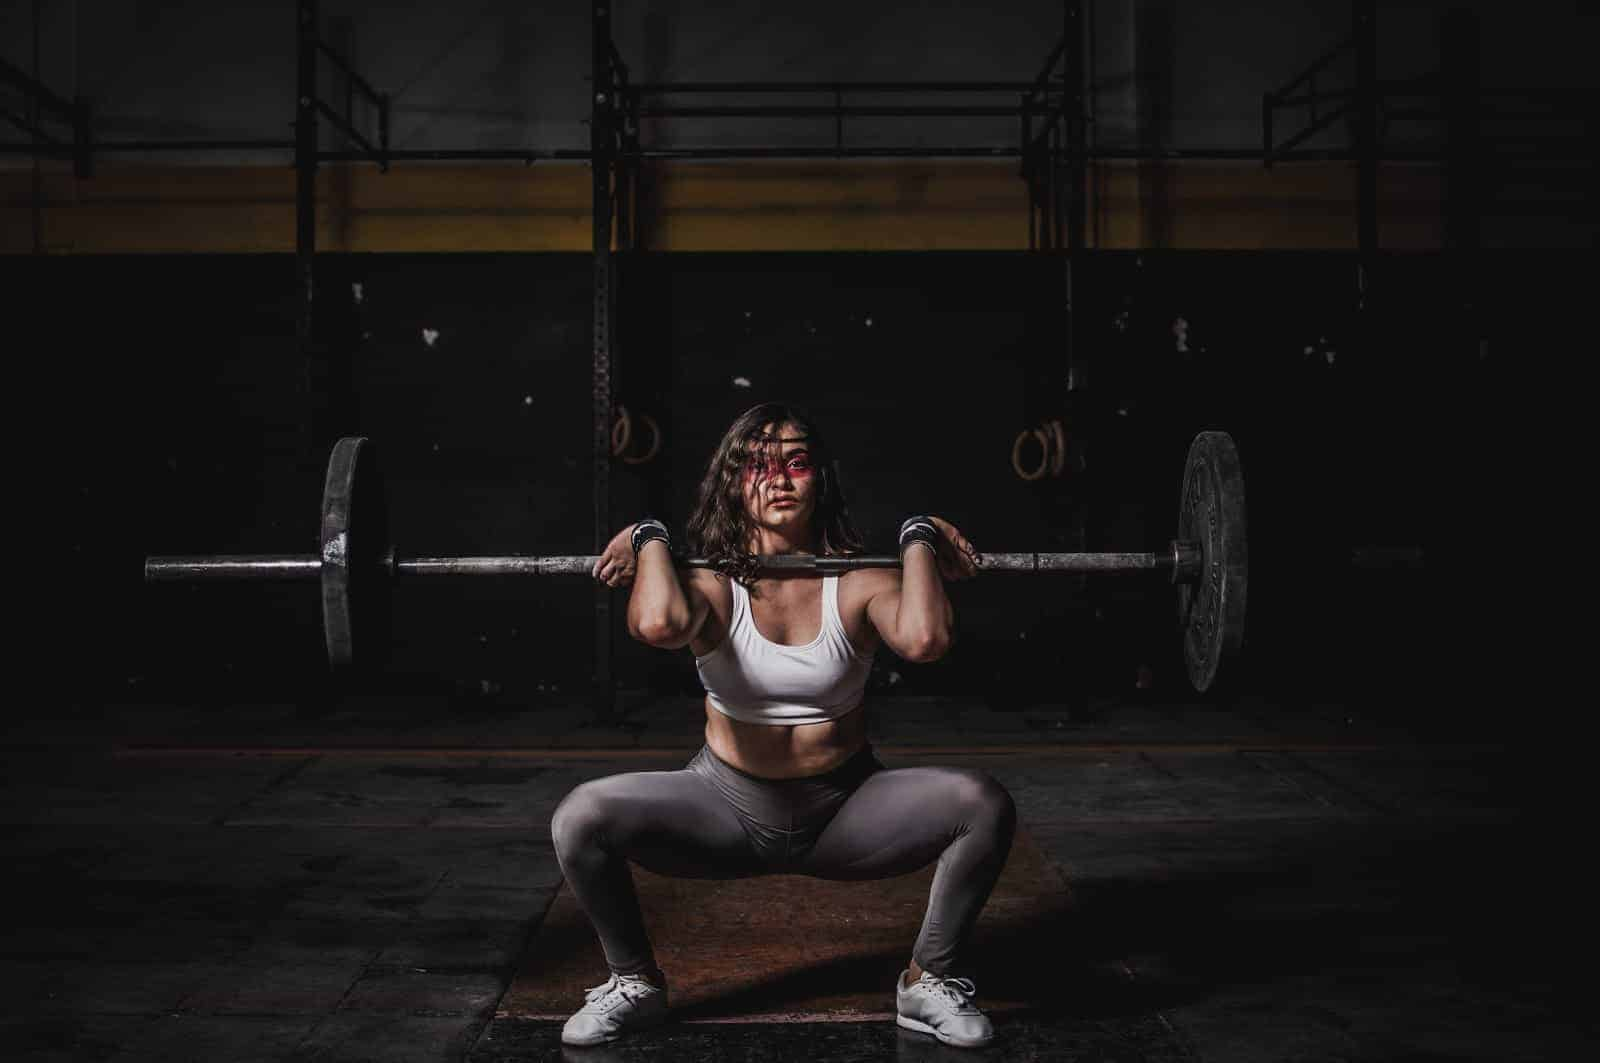 Strong woman squatting a barbell in connection with a discussion of whether intermittent fasting is for everyone.